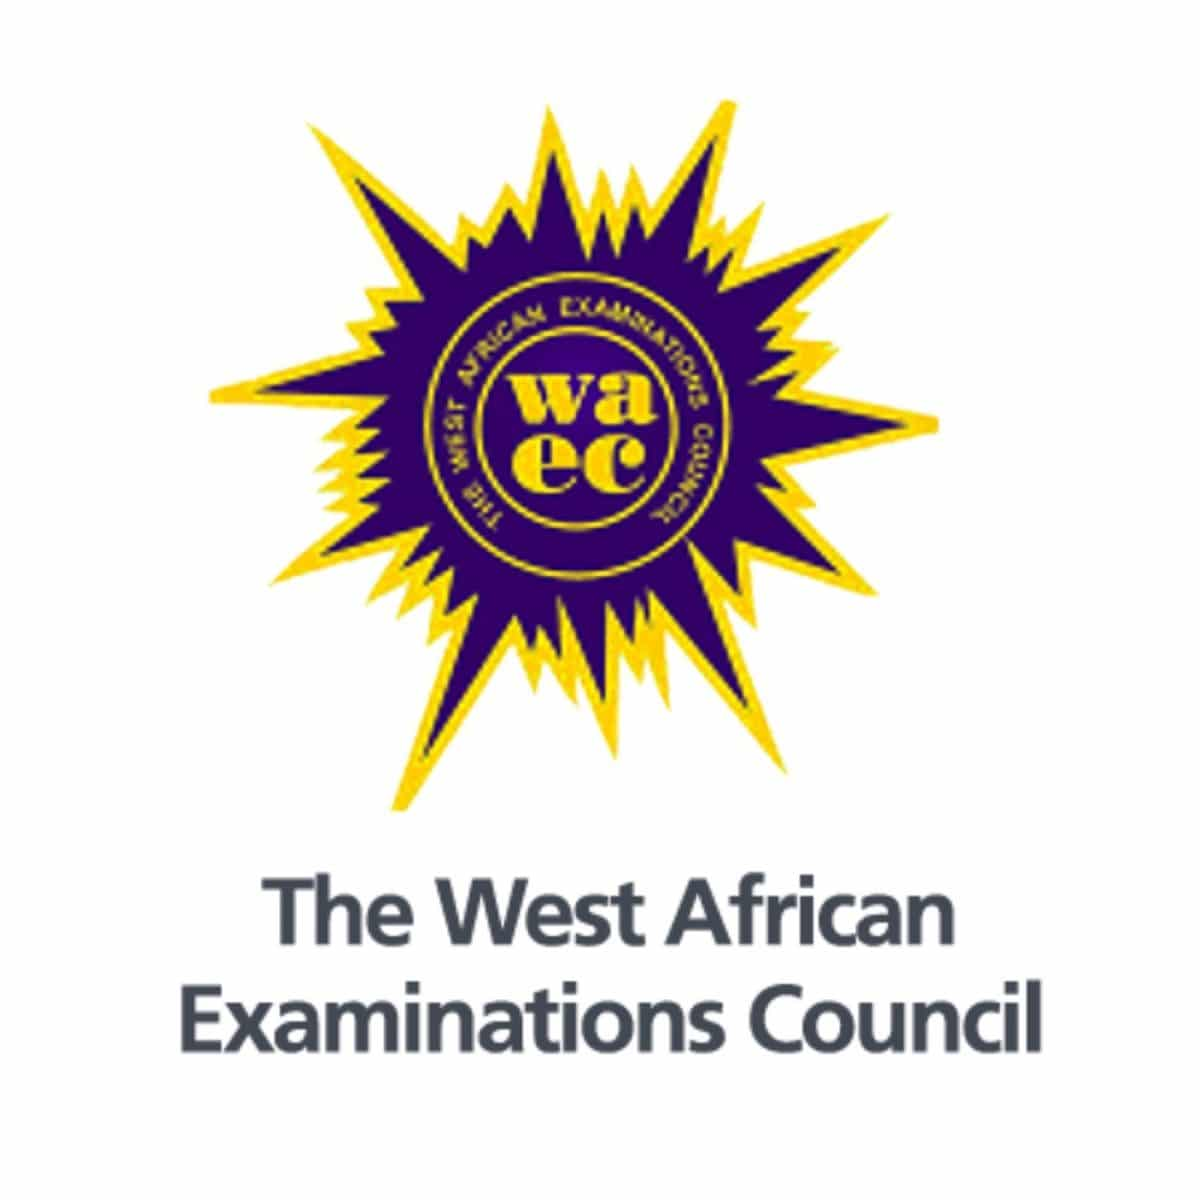 The Lagos State Government has commenced the 2020 May/June E-Registration (Data Capturing) of Senior Secondary School candidates in all Public Secondary Schools for the West African Senior School Certificate Examination (WASSCE) in the state.